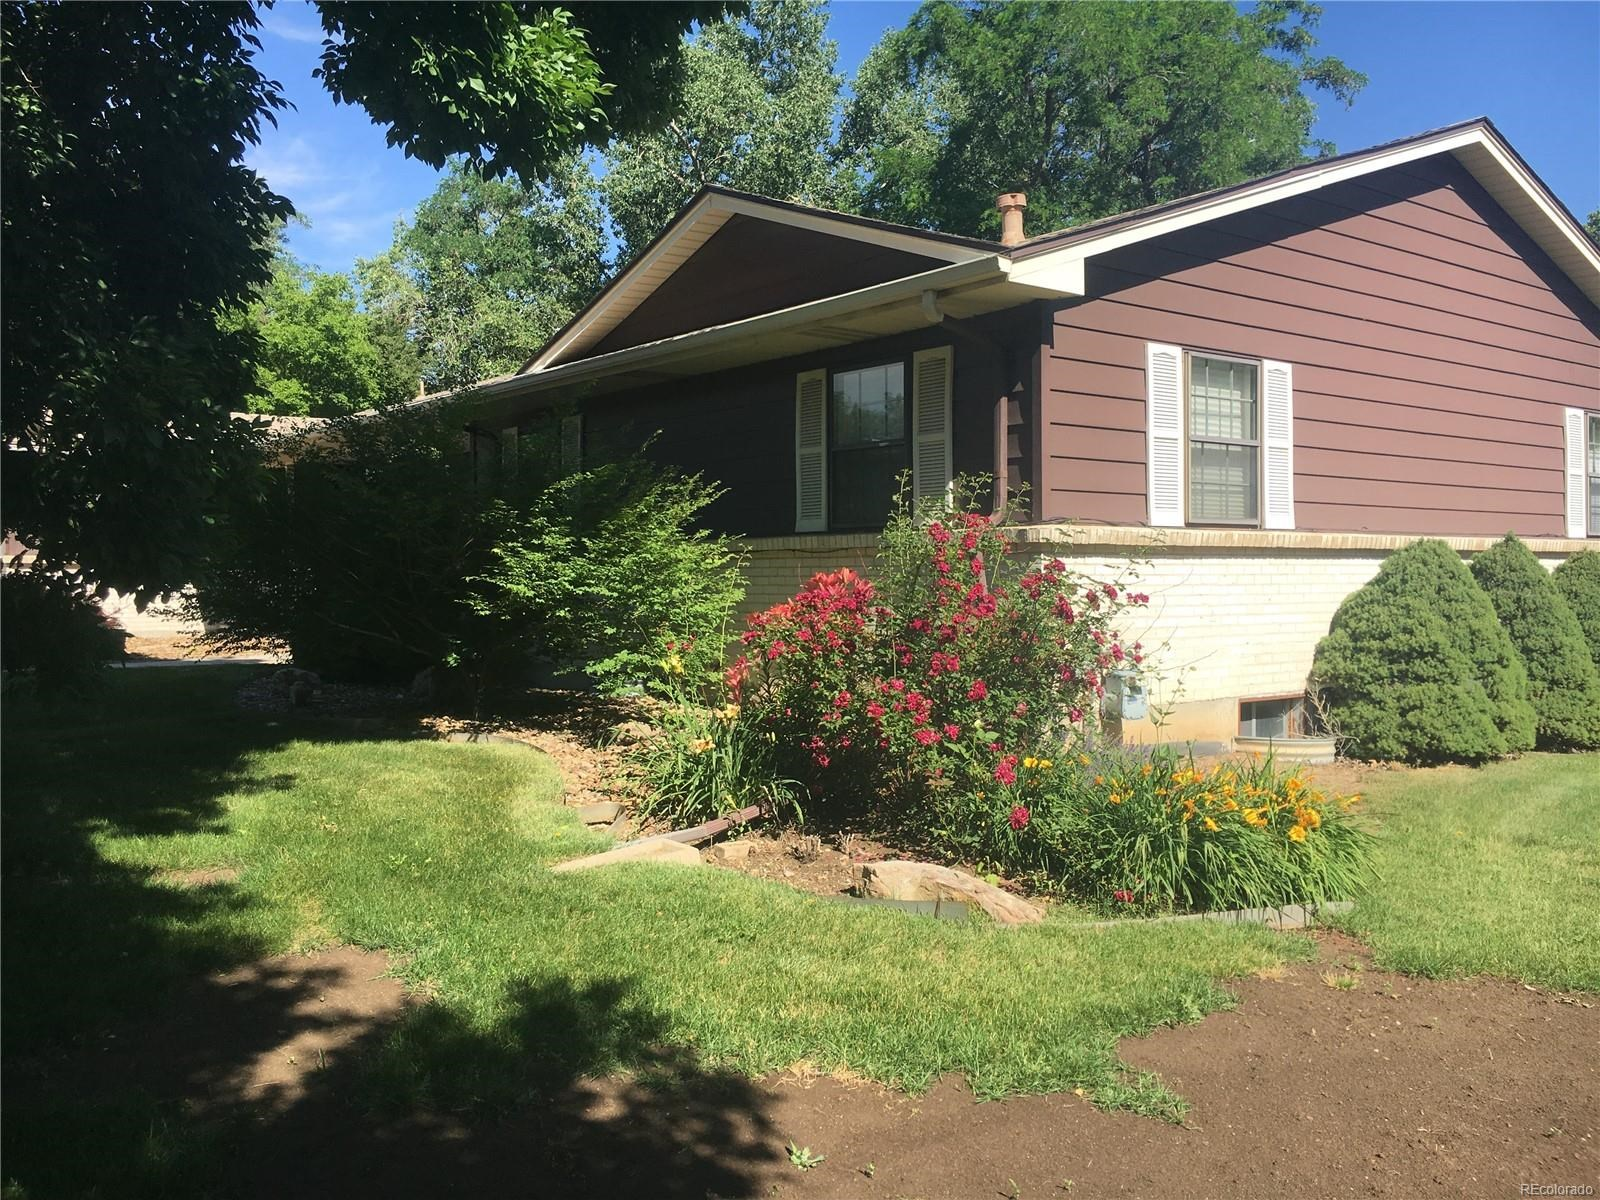 MLS# 8506204 - 2 - 12687 W 61st Place, Arvada, CO 80004